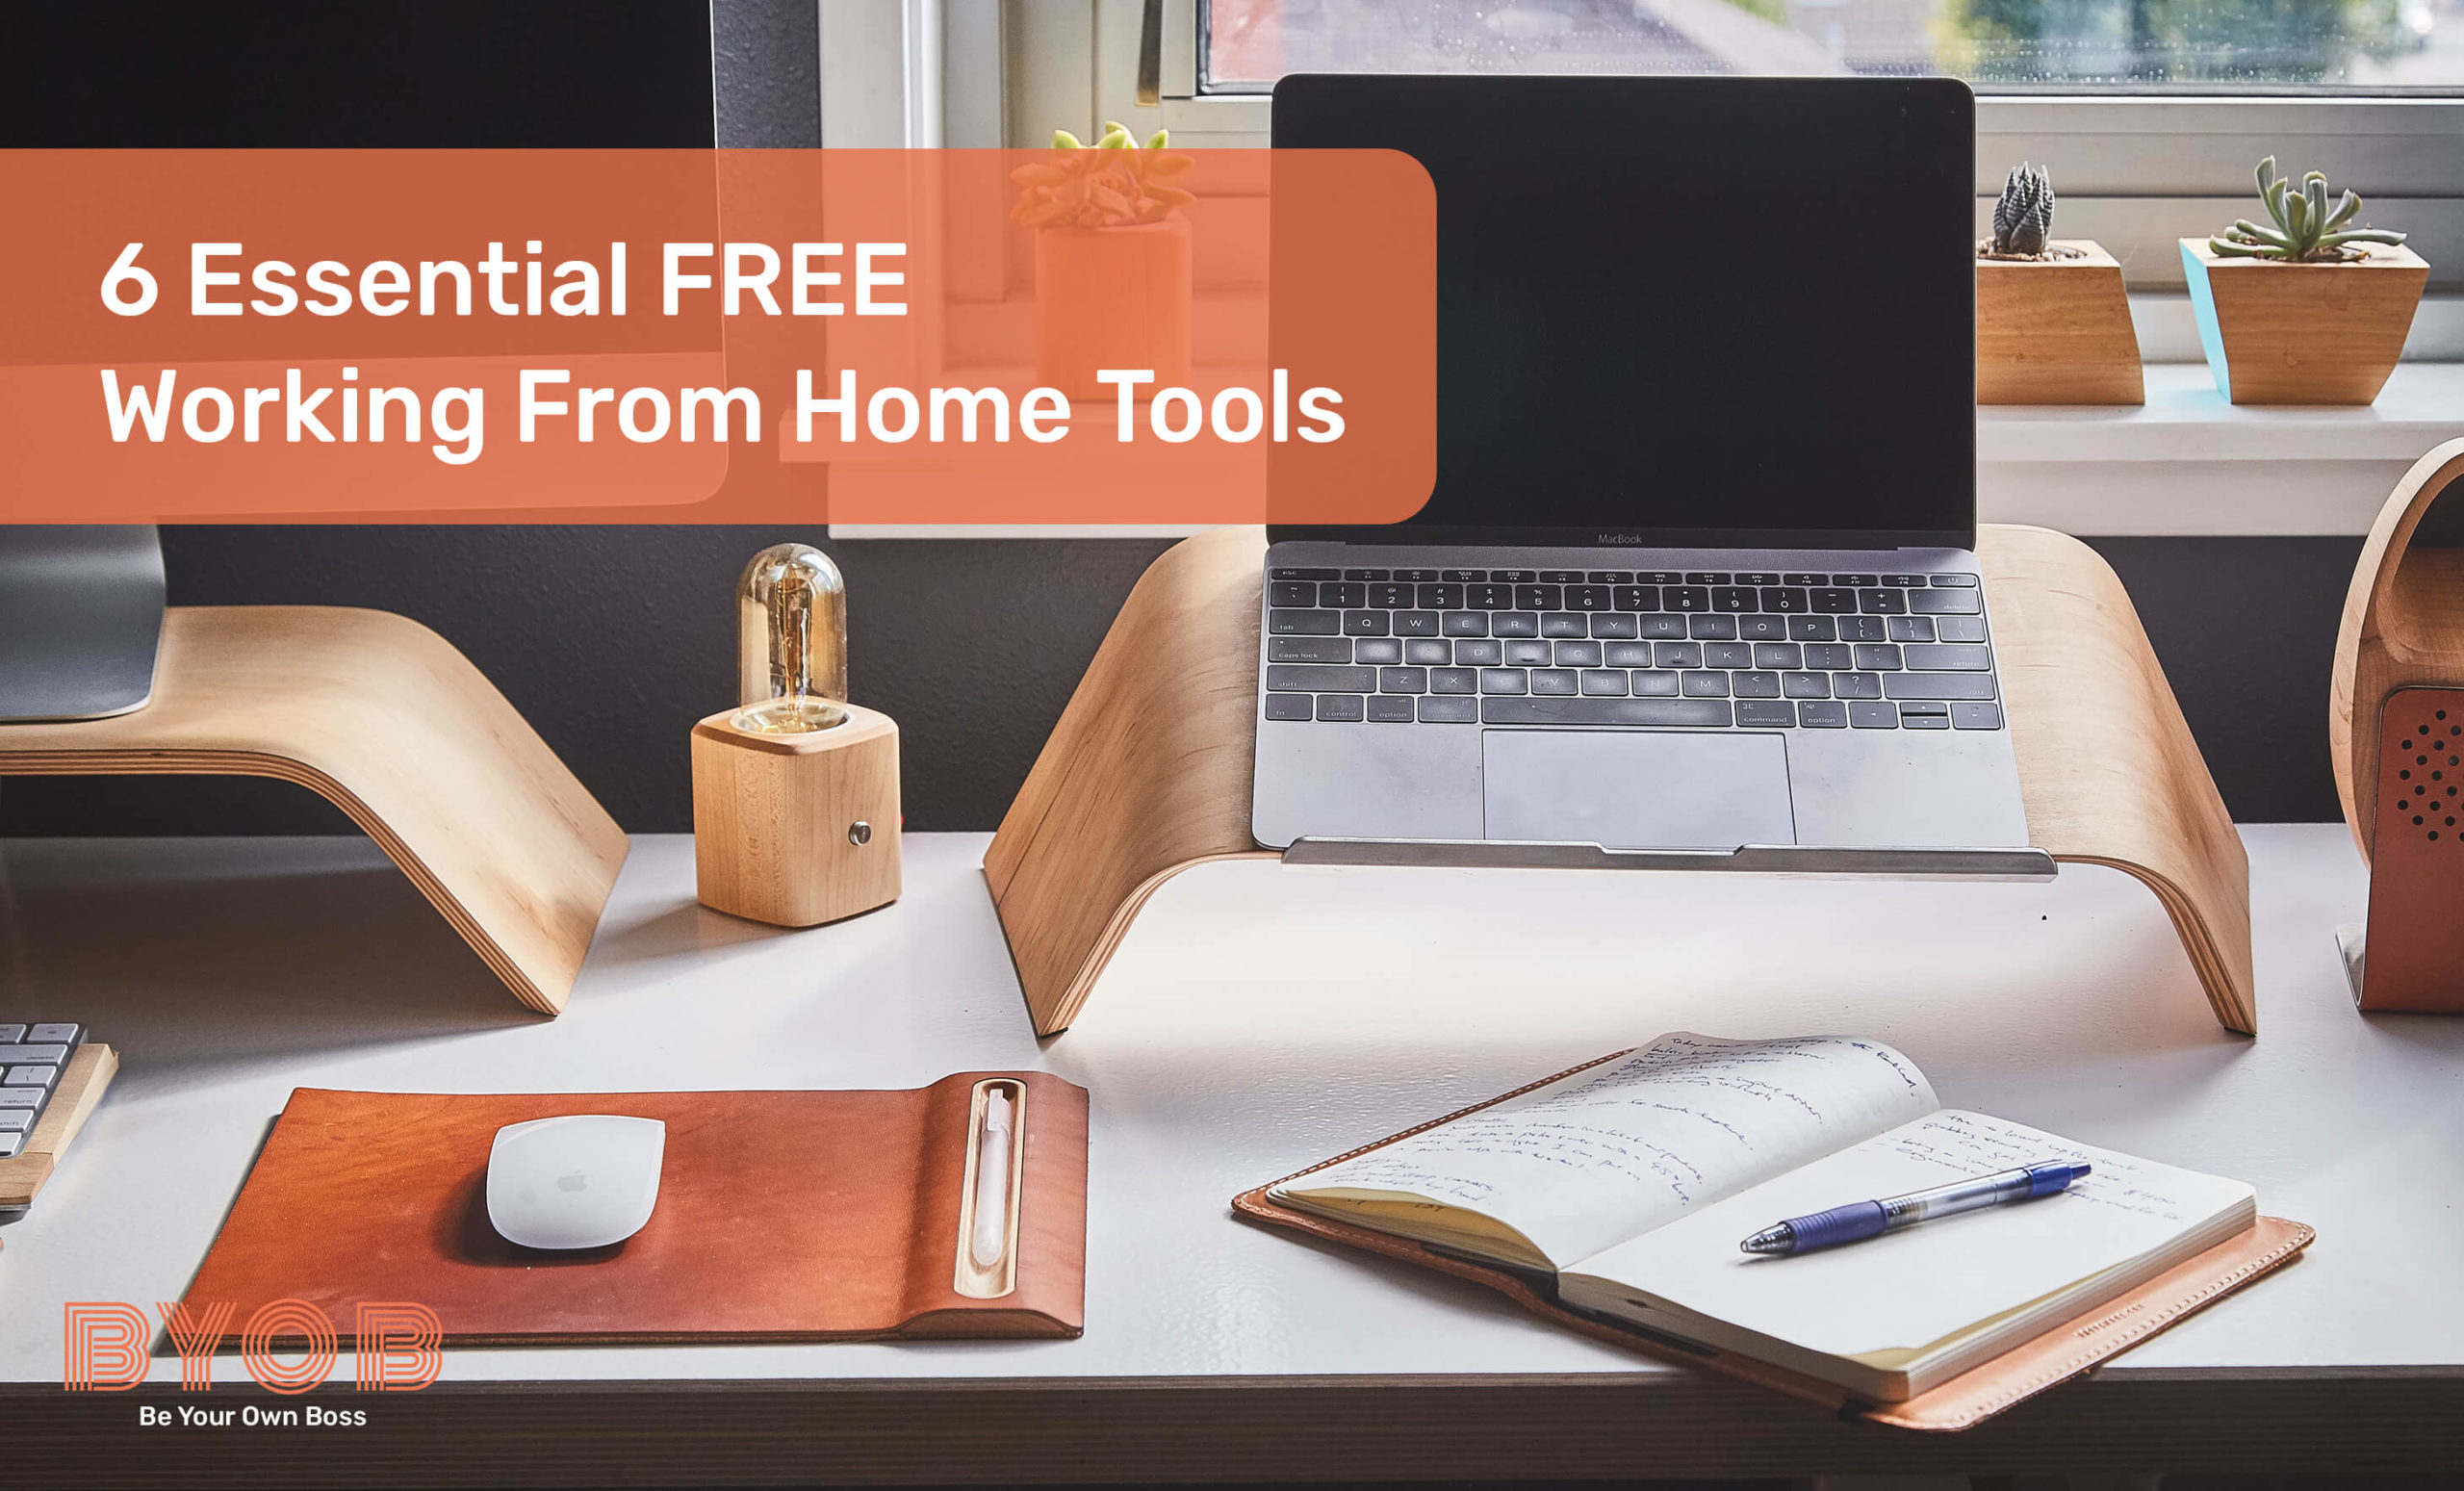 6 essential FREE tools when working from home